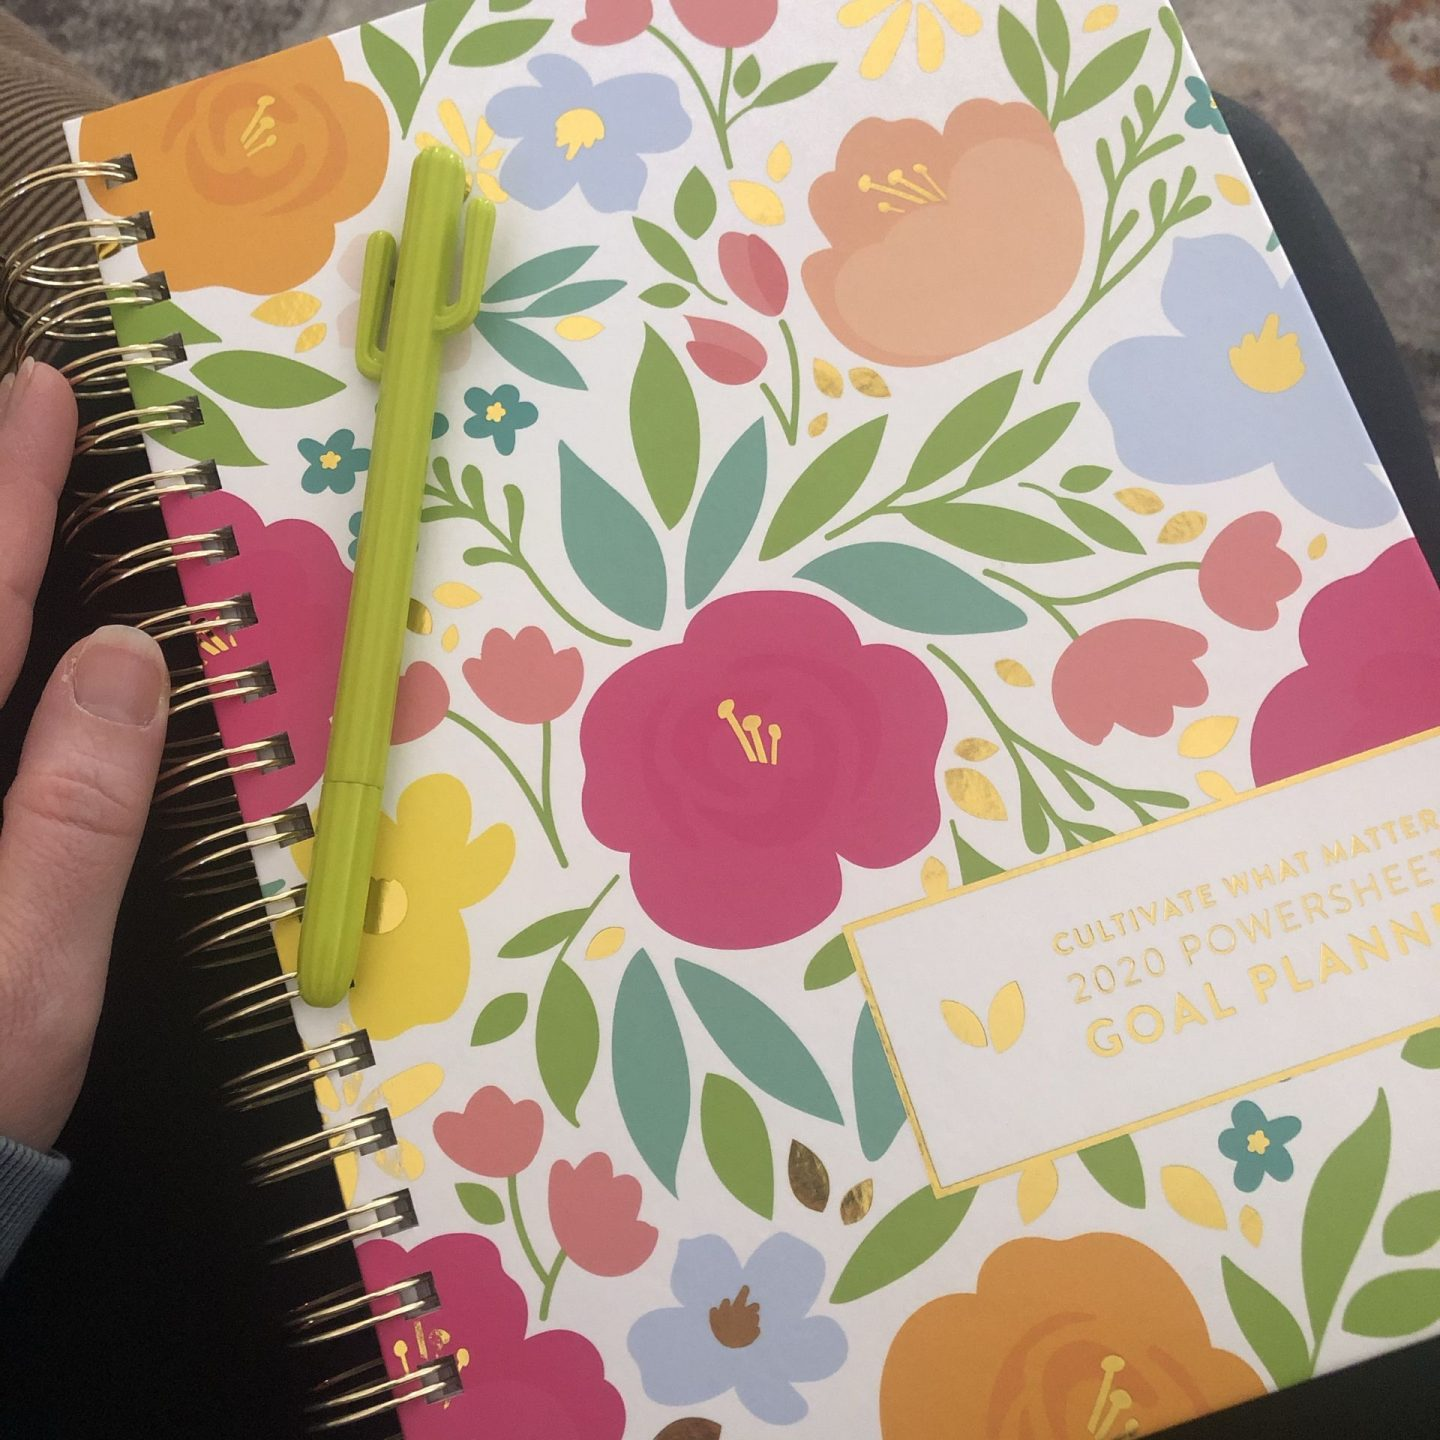 NC blogger Rebecca Lately is sharing her goal tracking method for 2020. If you want to achieve your goals in 2020, check out the planner she's using!